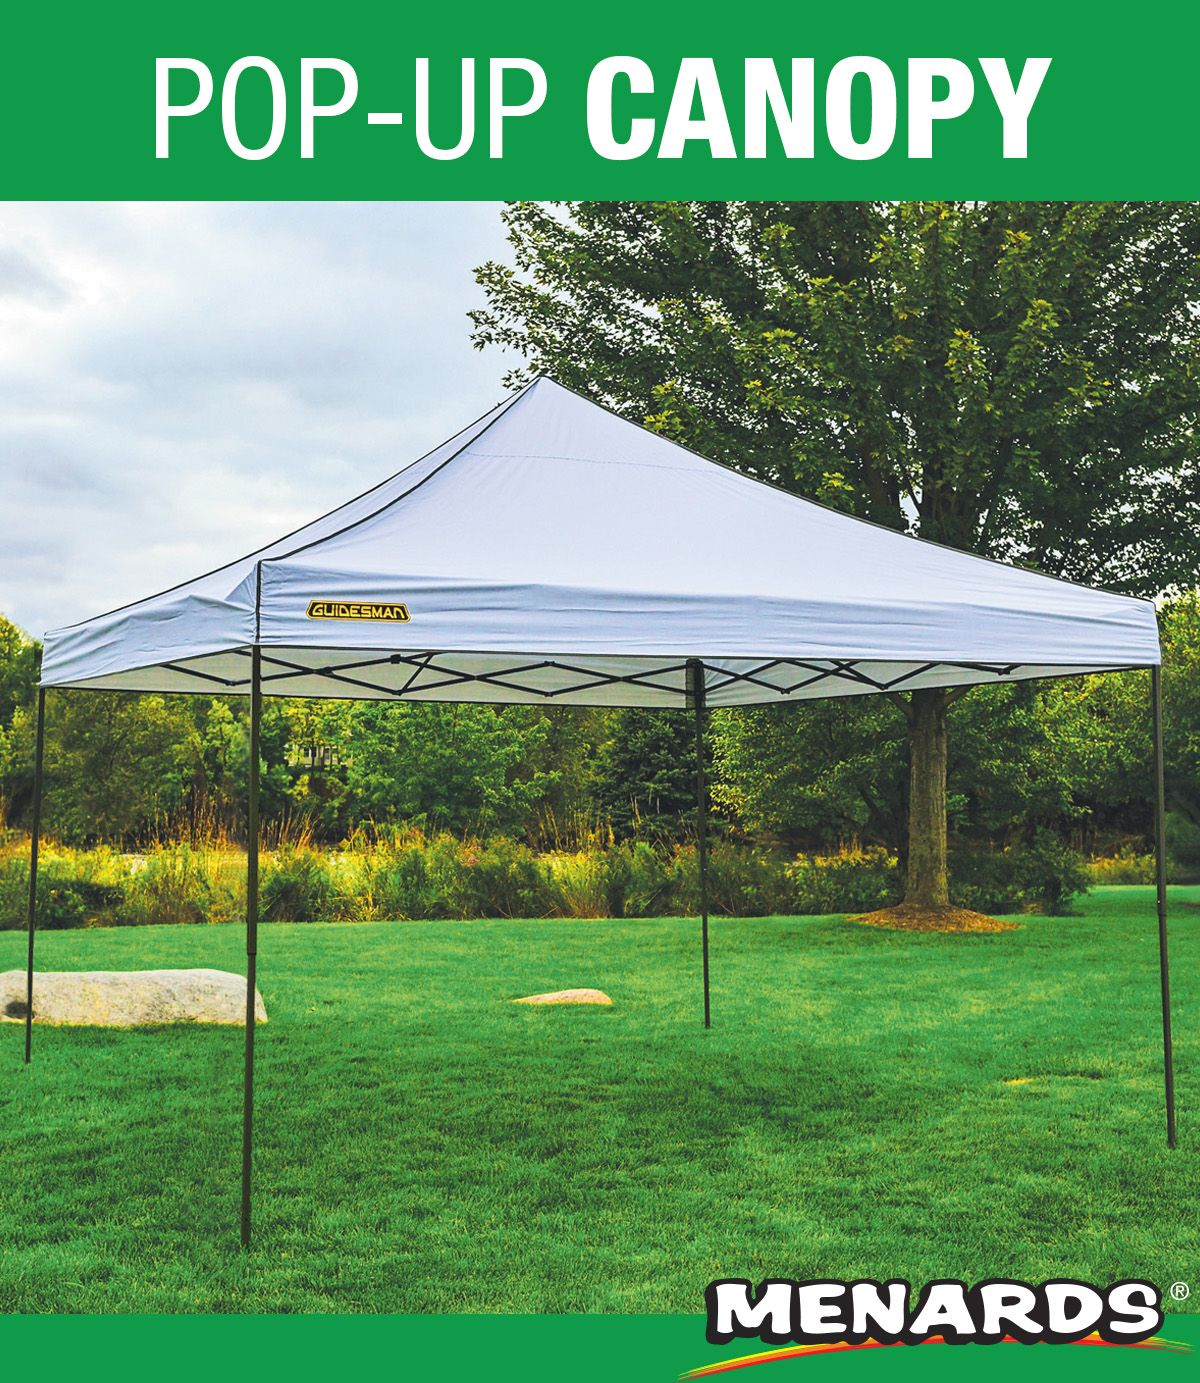 This Guidesman Pop Up Canopy Provides 144 Square Feet Of Shade To Protect And Cool 10 To 14 People The Frame Design With A Pop Up C Canopy Patio Frame Design